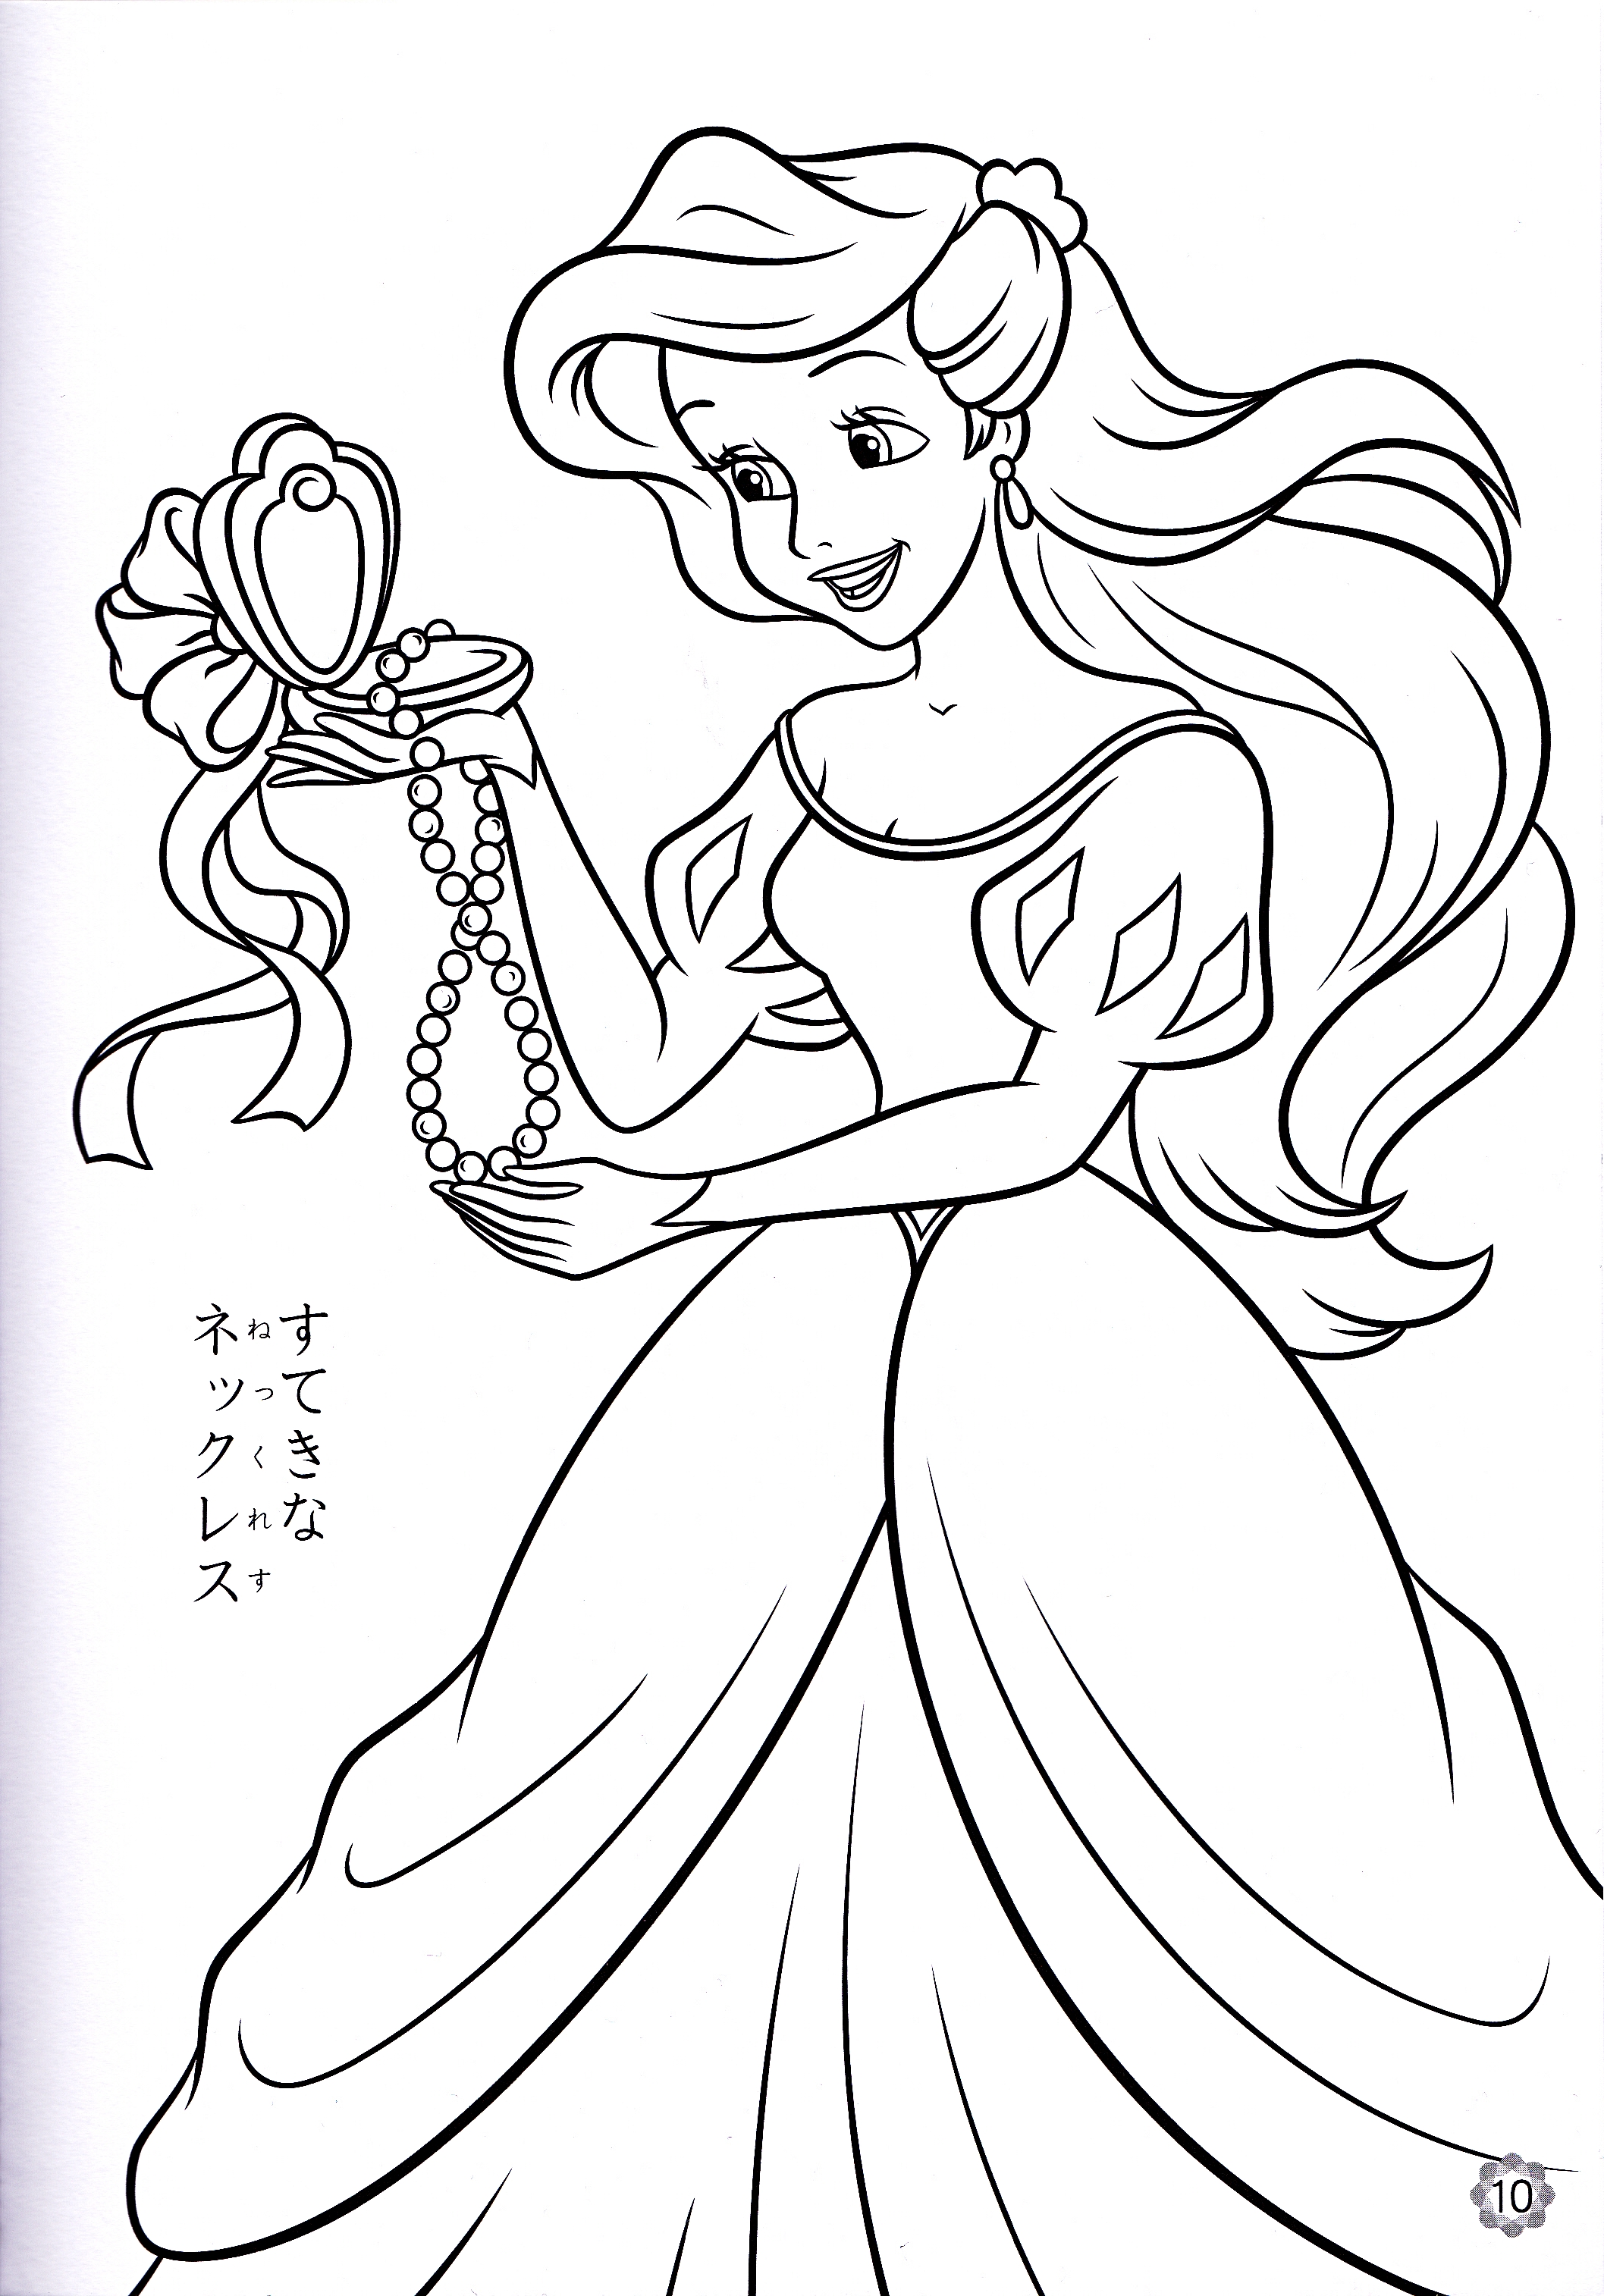 disney ariel coloring pages - photo#8